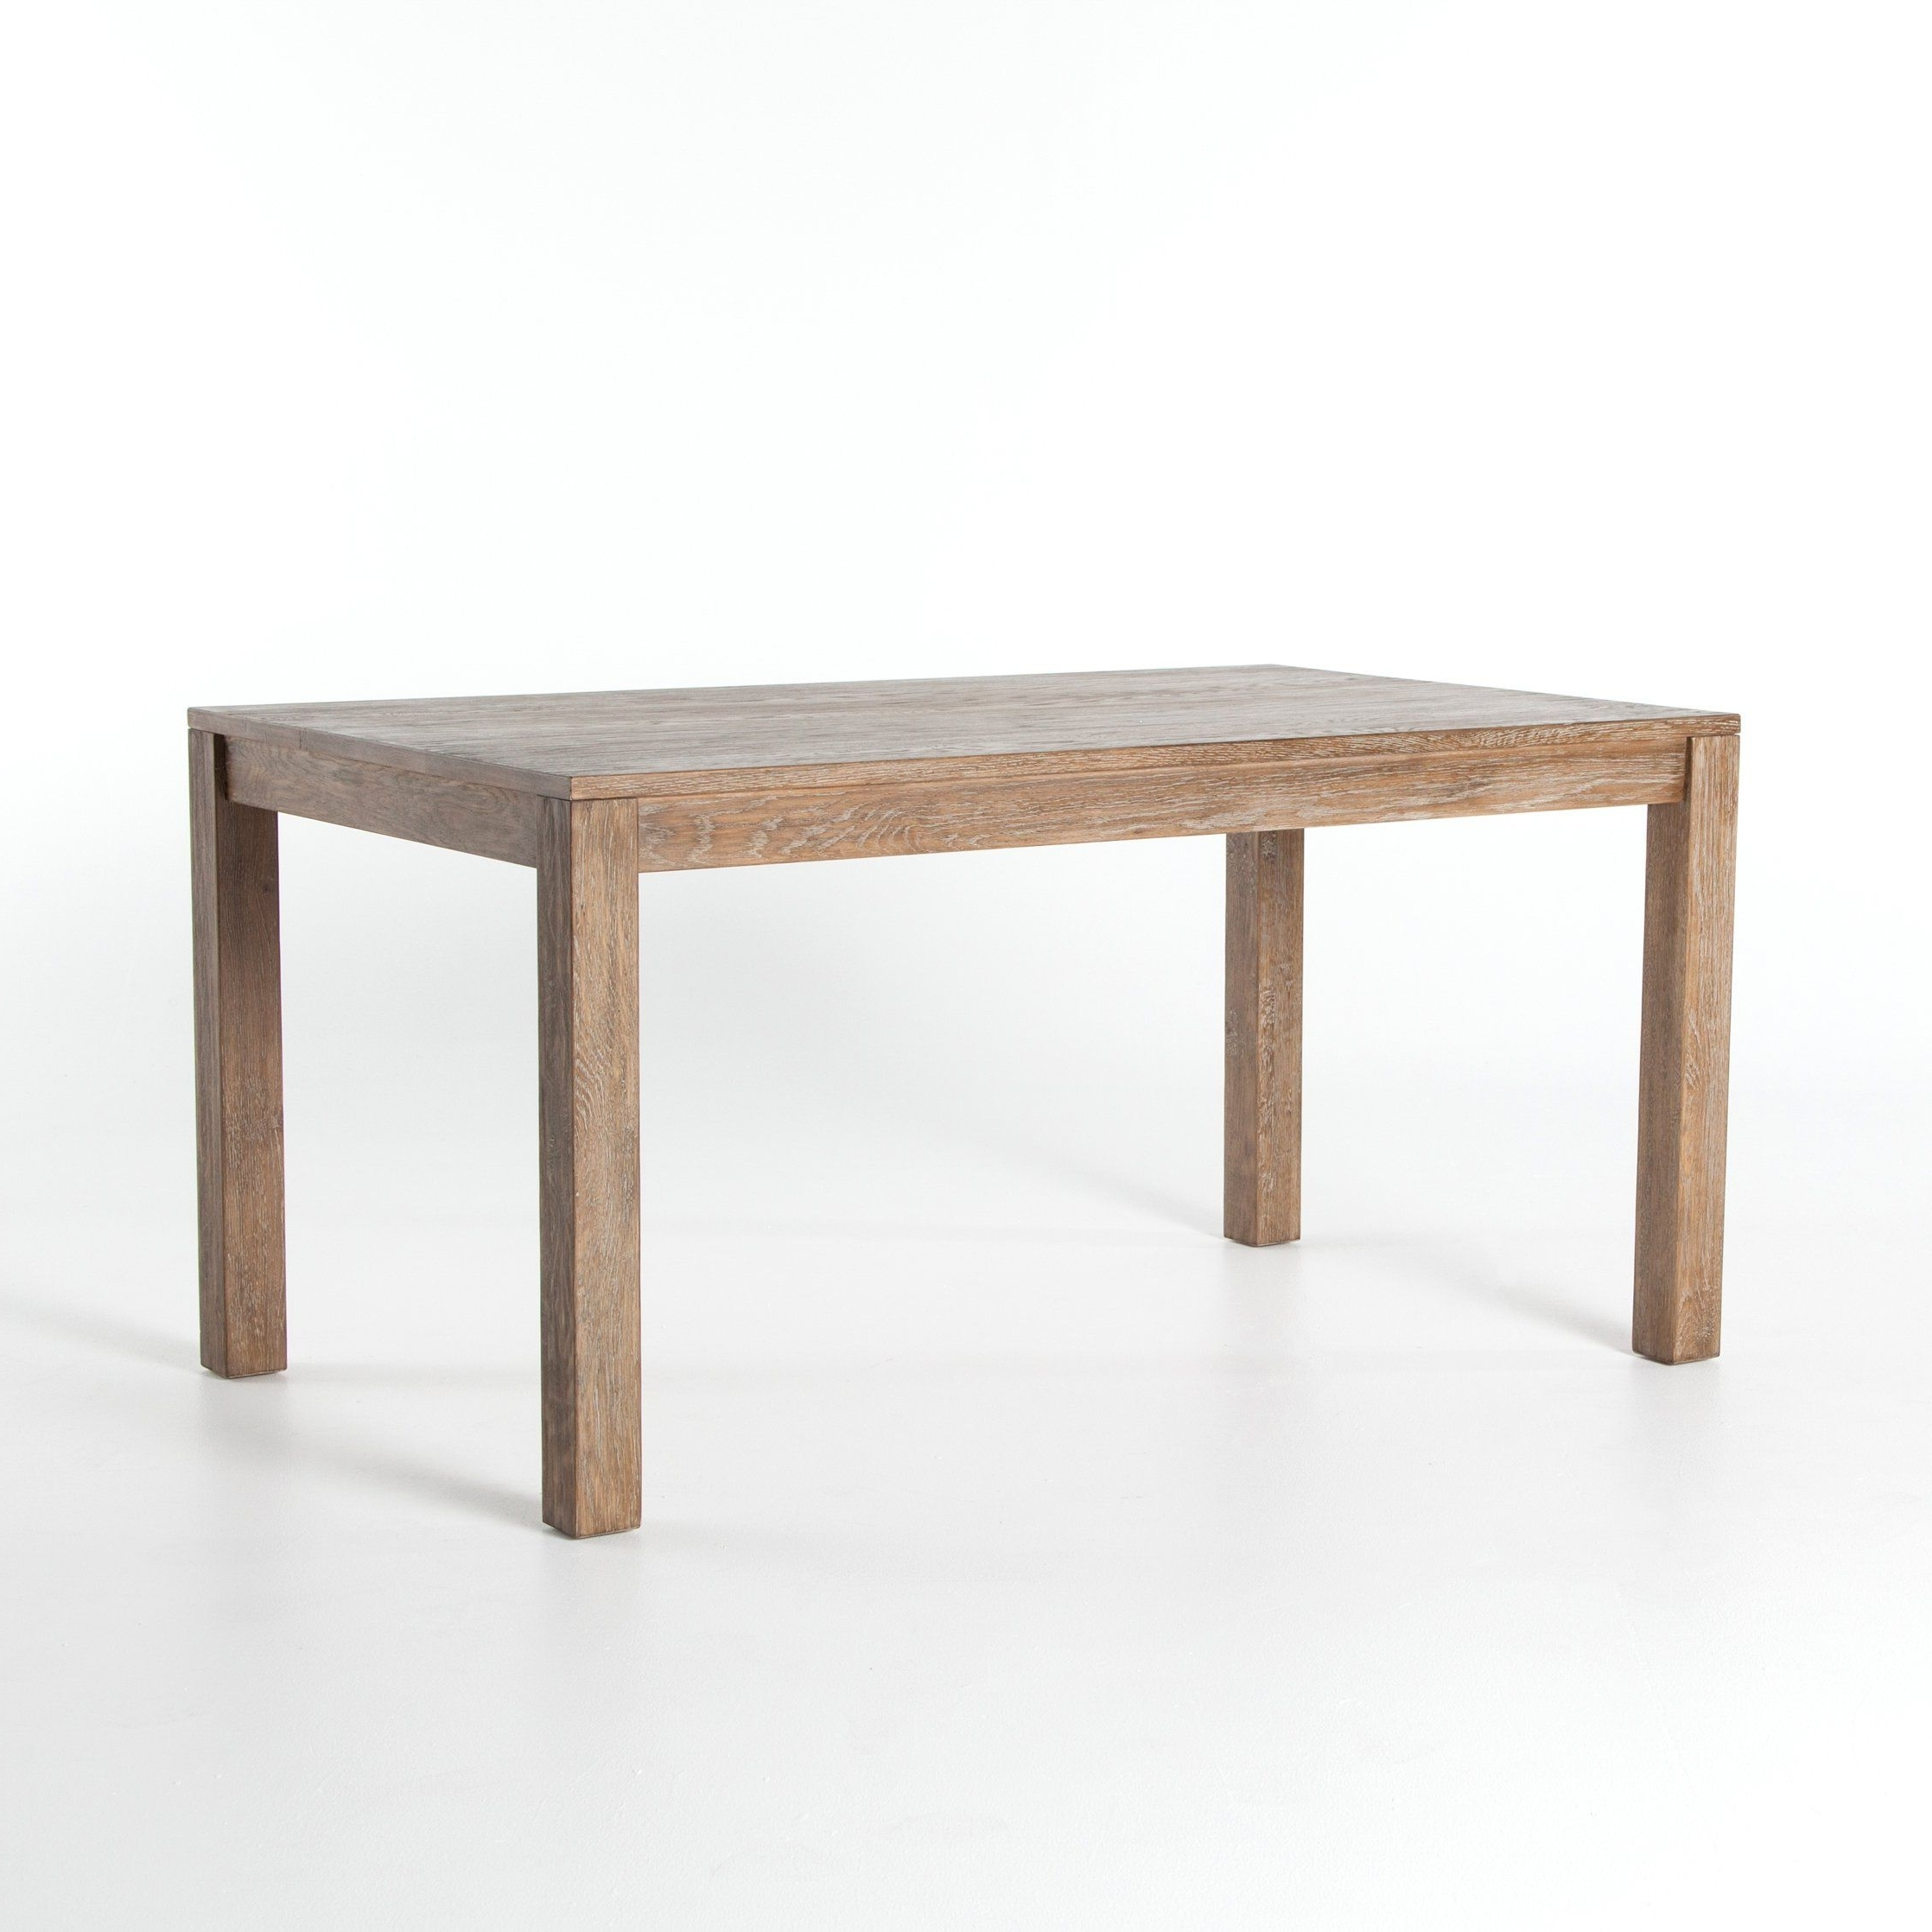 Widely Used Caden Dining Table: Light Burnt Oak (View 25 of 25)